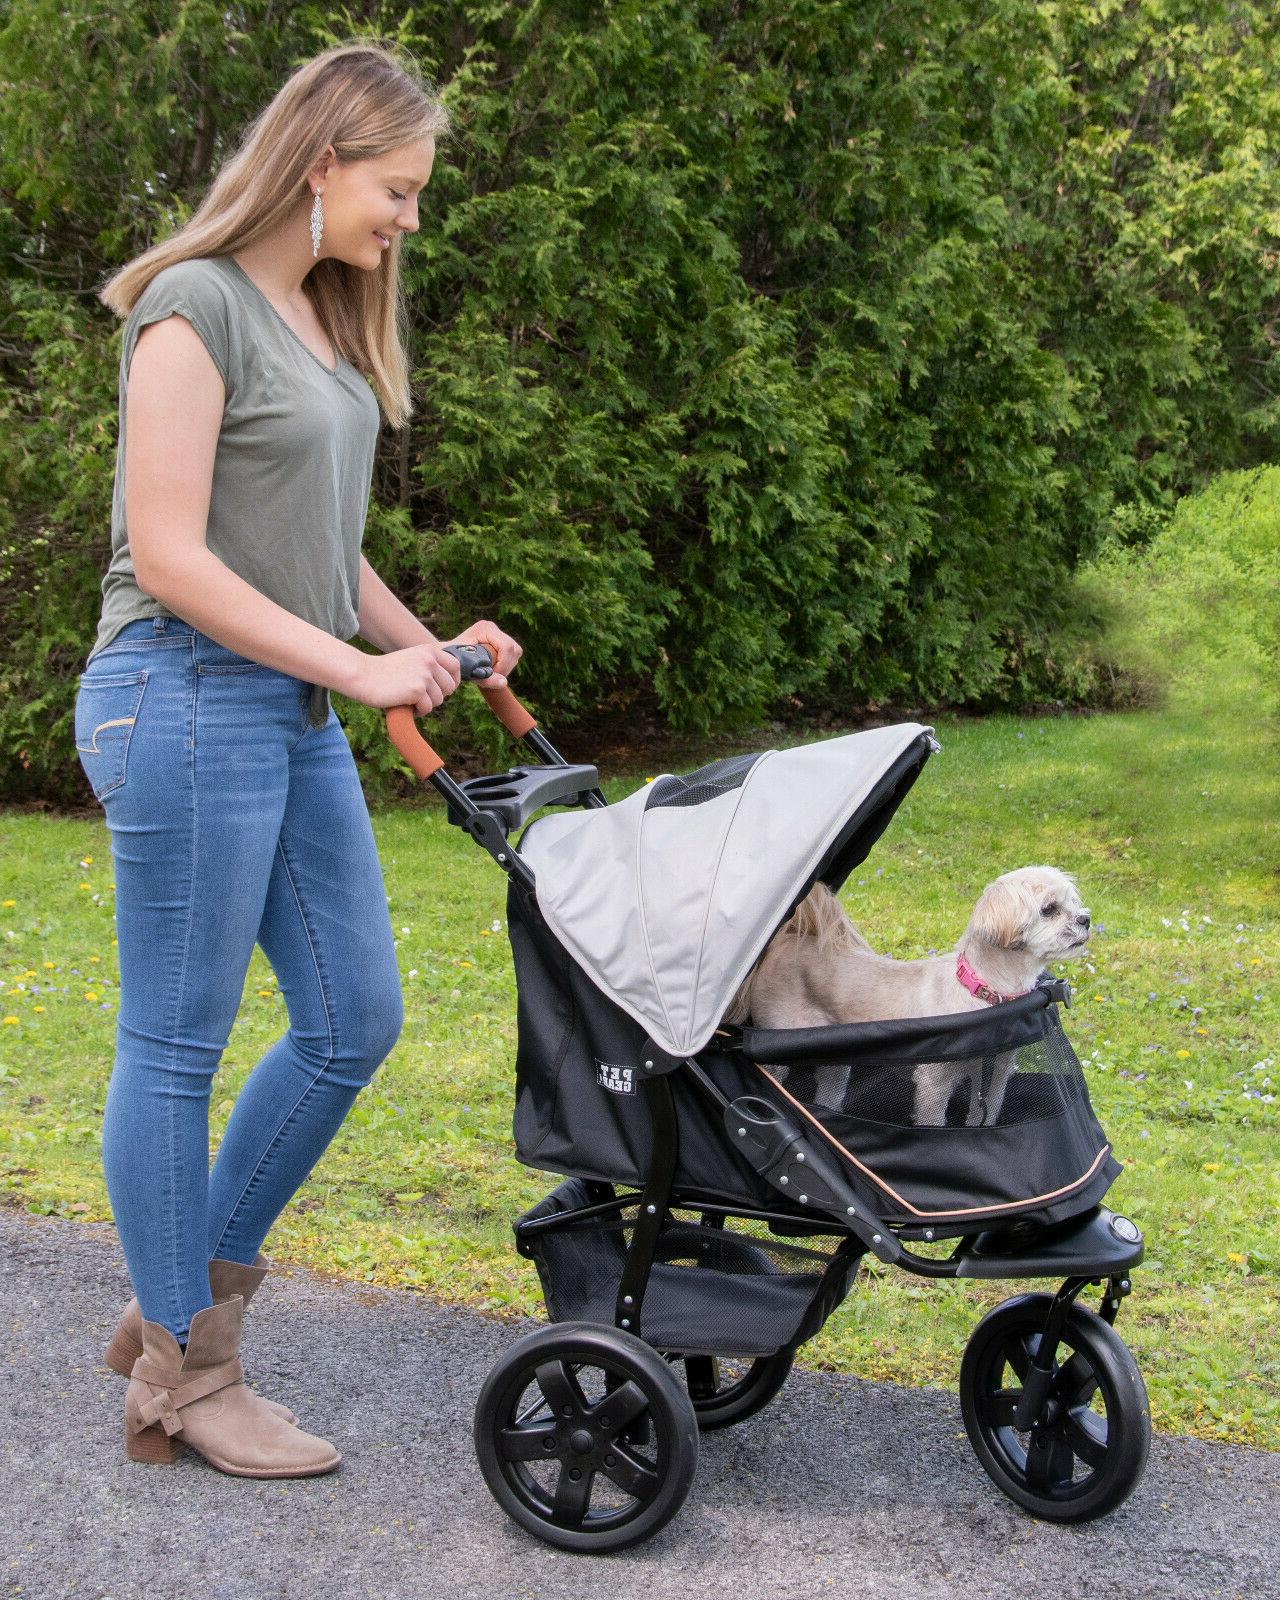 NEW! Gear NO-ZIP / All Stroller with Easy-Locking Latch